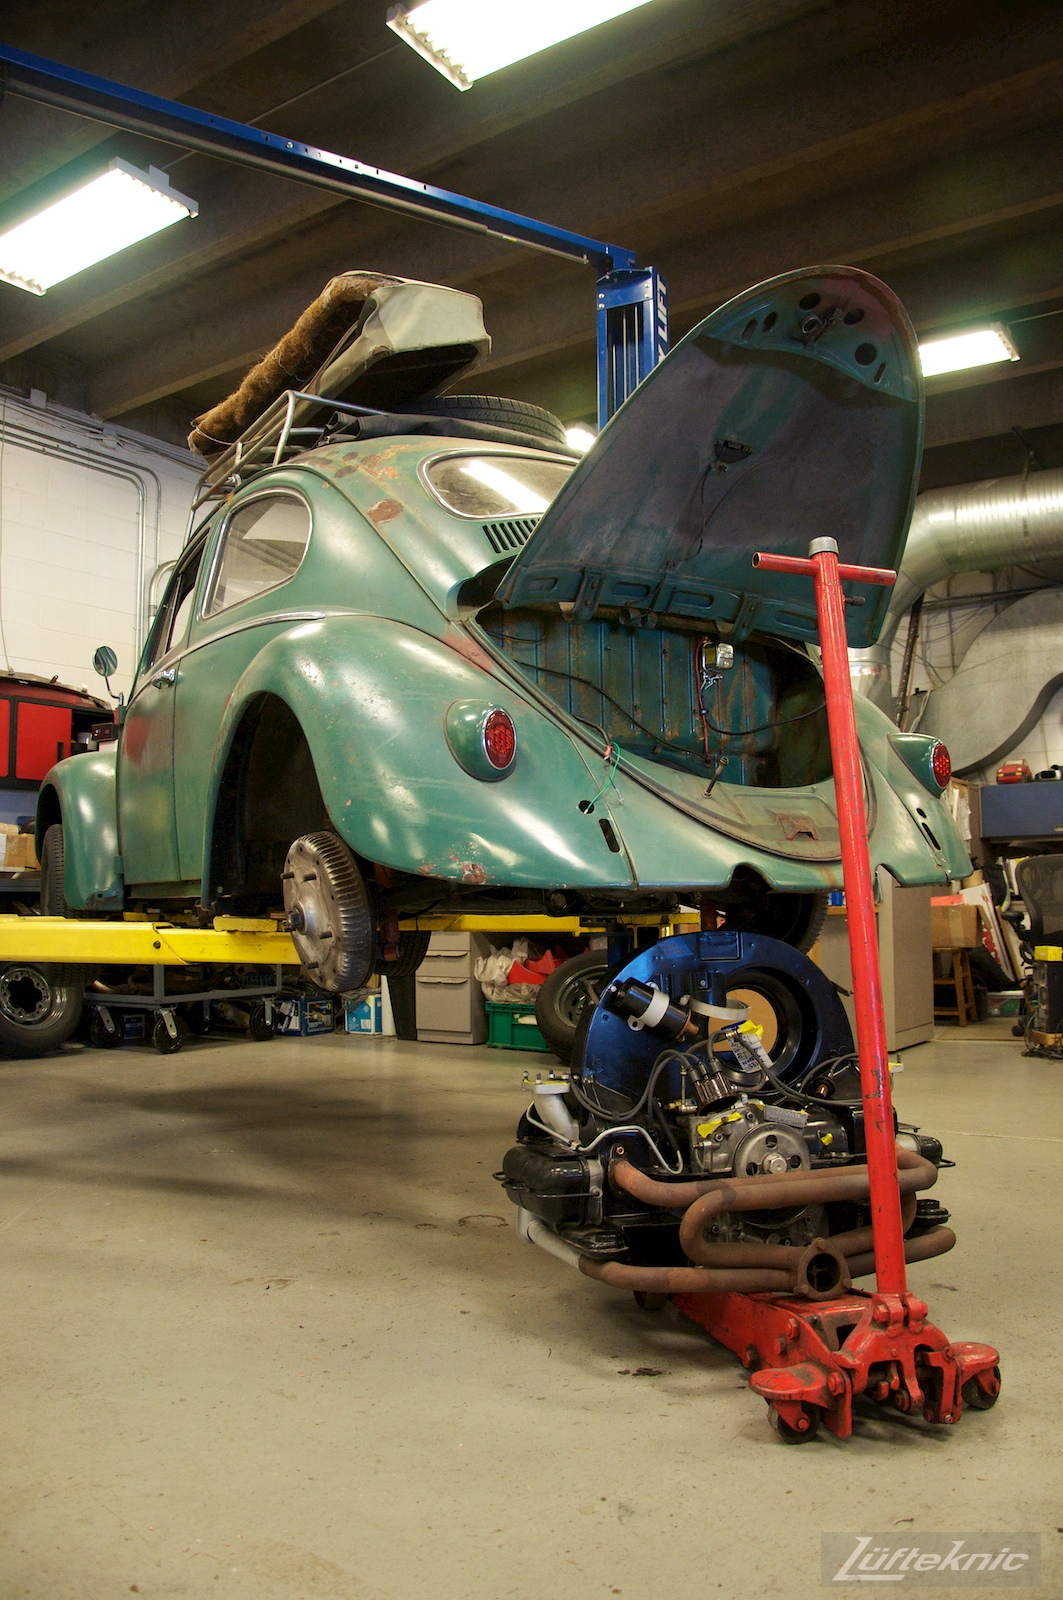 All original green 1960 Beetle with a Porsche 356 engine ready for install.